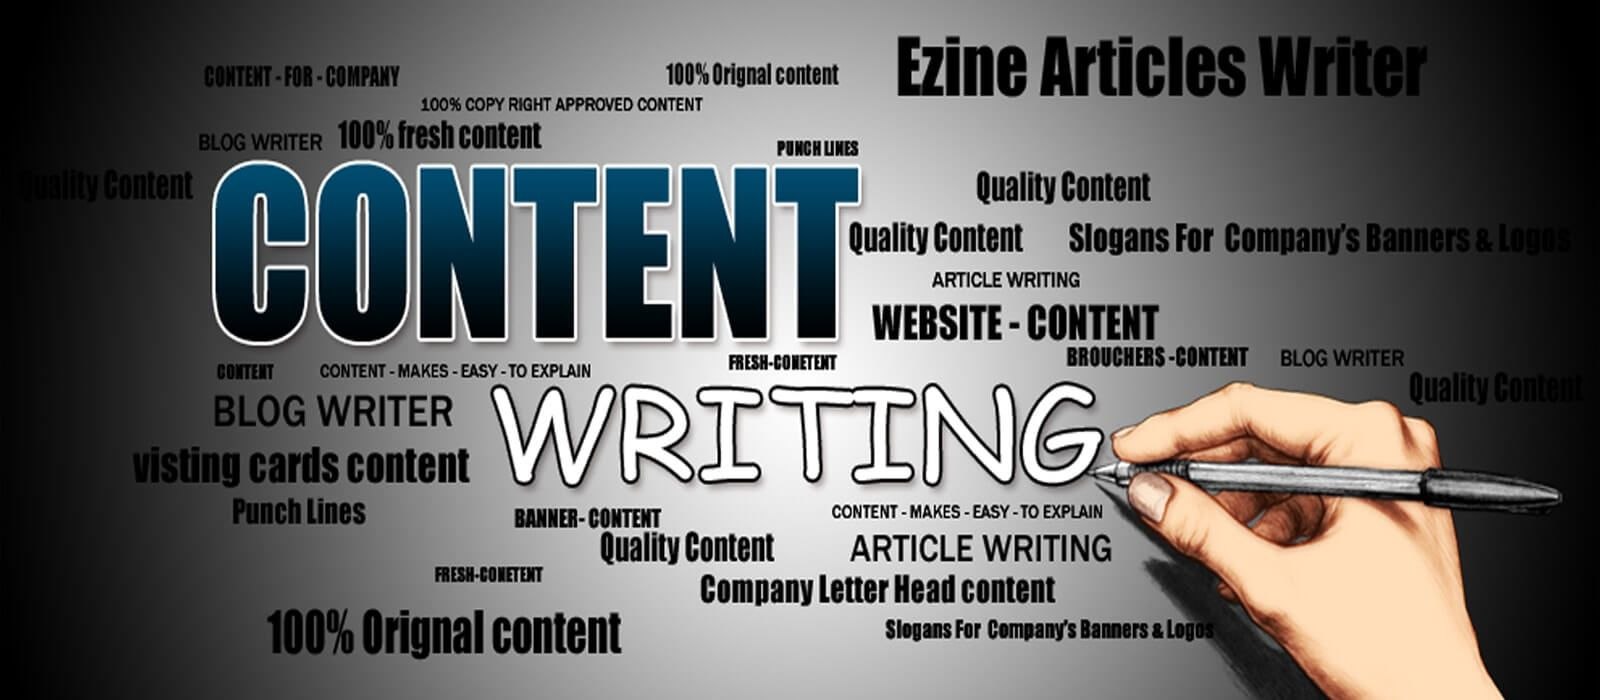 Content Writing Services Online Writing Jobs Writing Jobs Content Writing